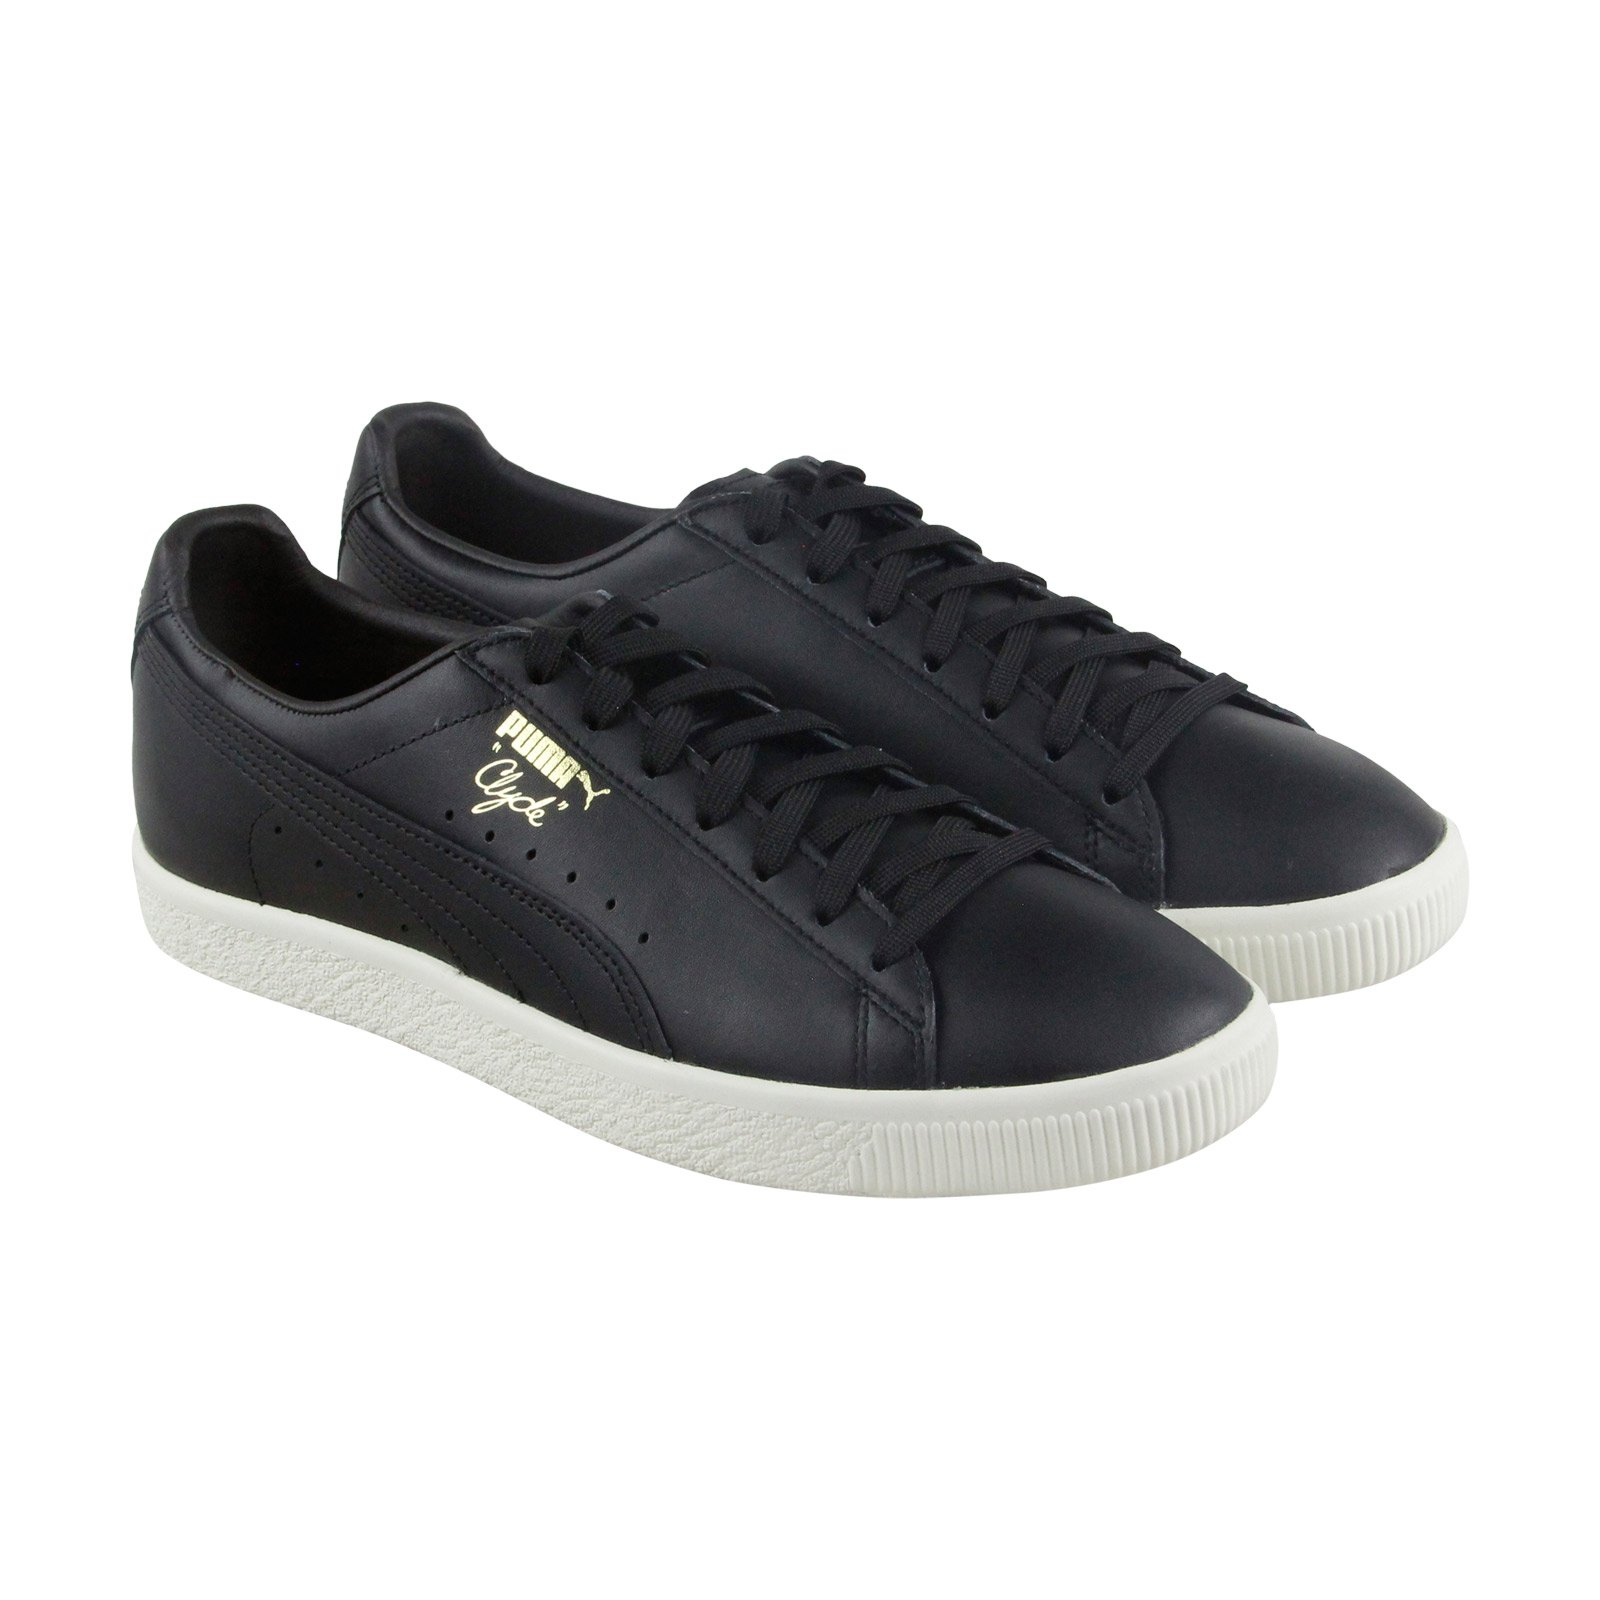 PUMA Clyde Natural Mens Black Leather Lace up Sneakers Shoes 5.5